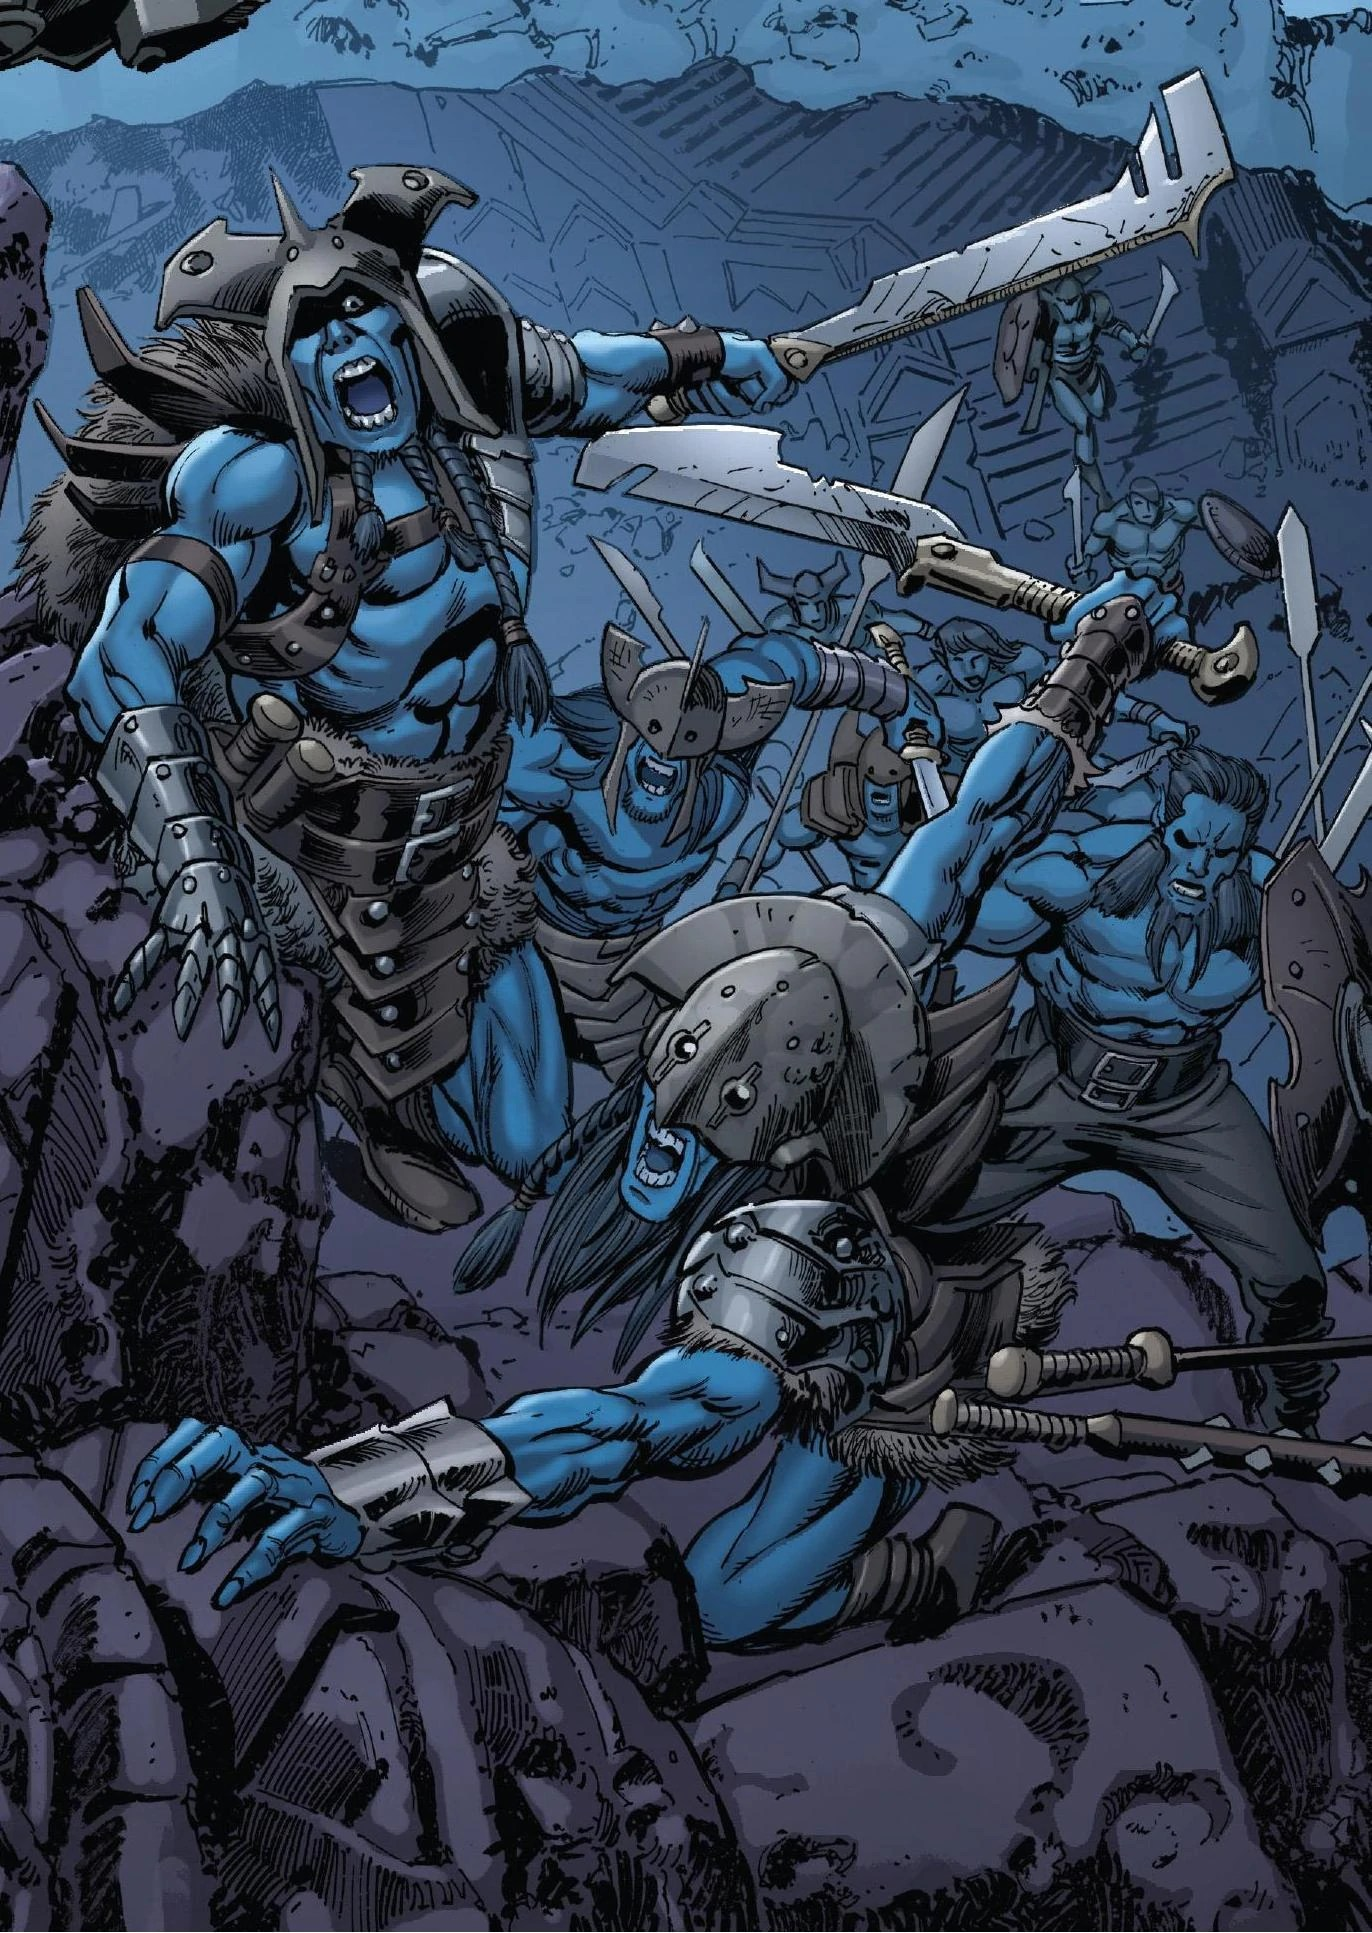 Marvel Comics Tends To Give Their Dark Elves Blue Skin Rather Than Pitch Black Although They Were Apparently Caucasian In Earliest Appearances